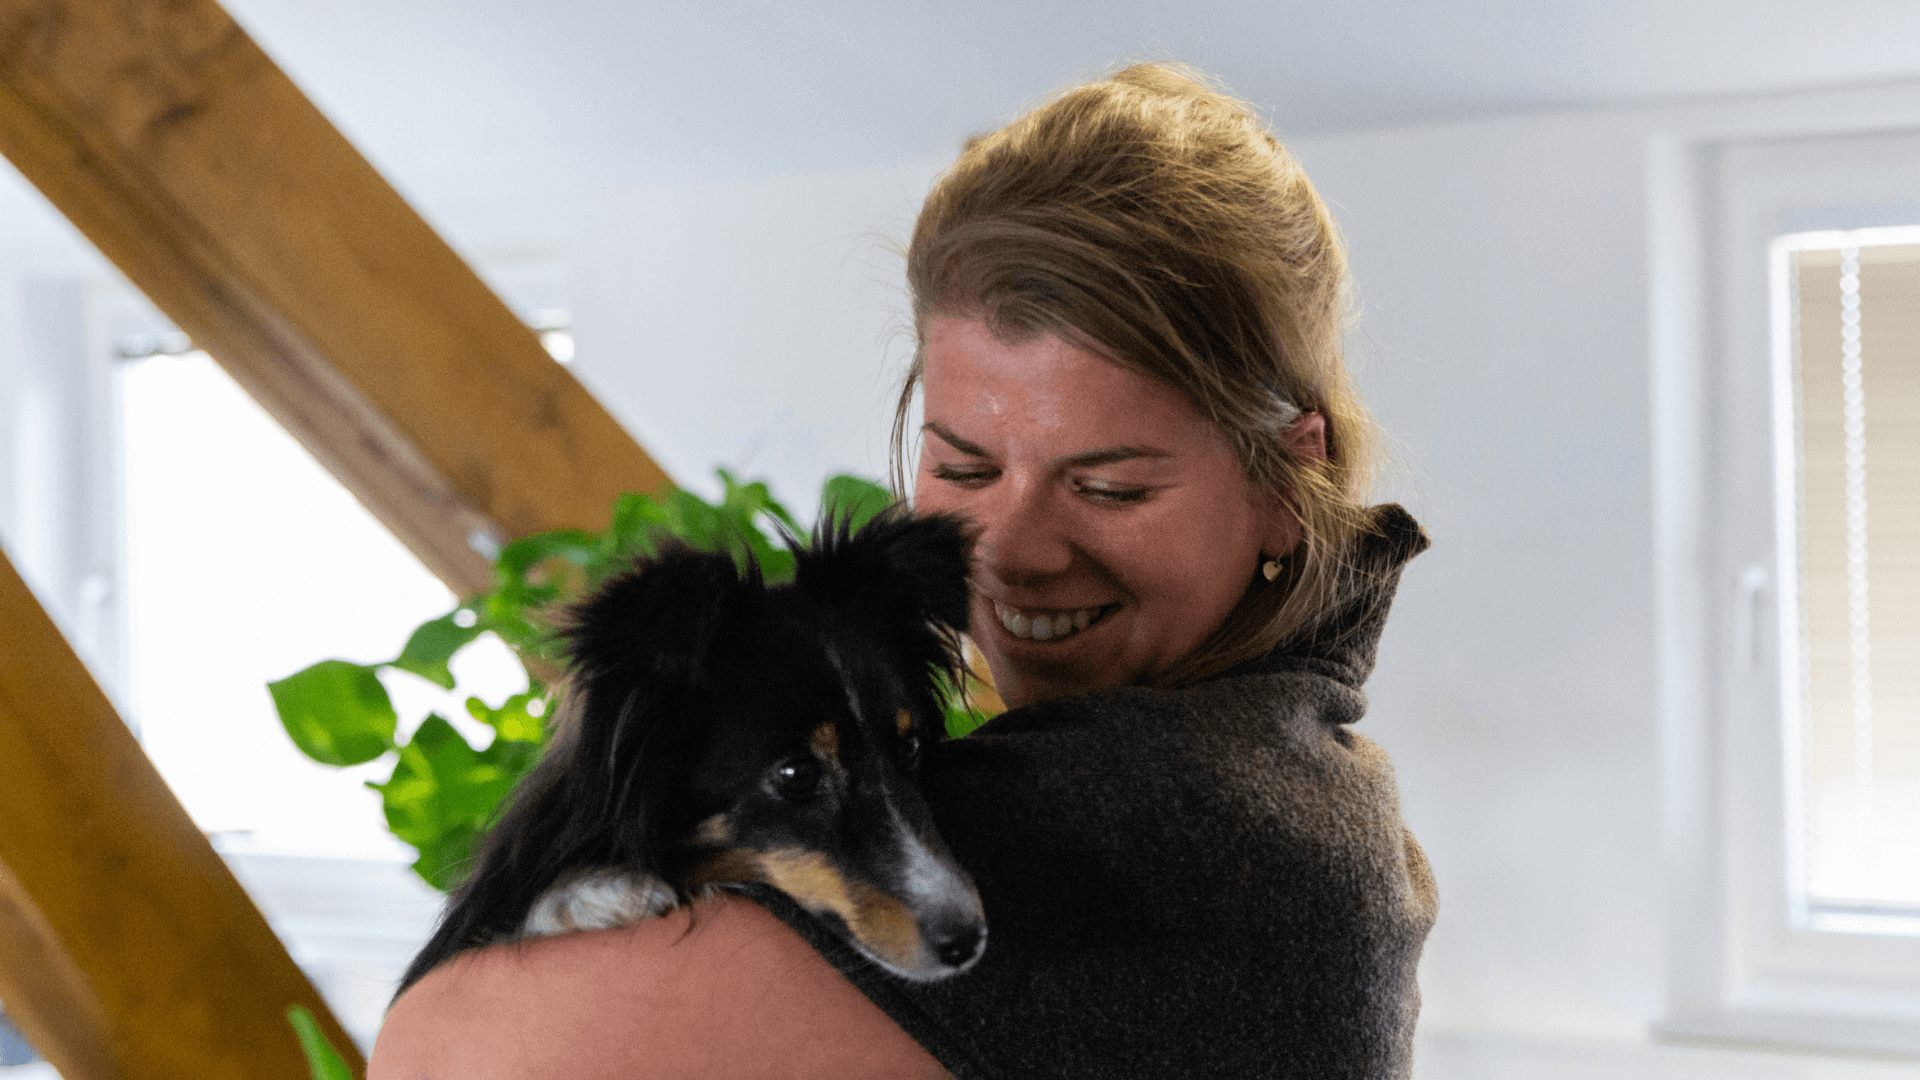 Crisis Management Strengthening the bon between pets and humans